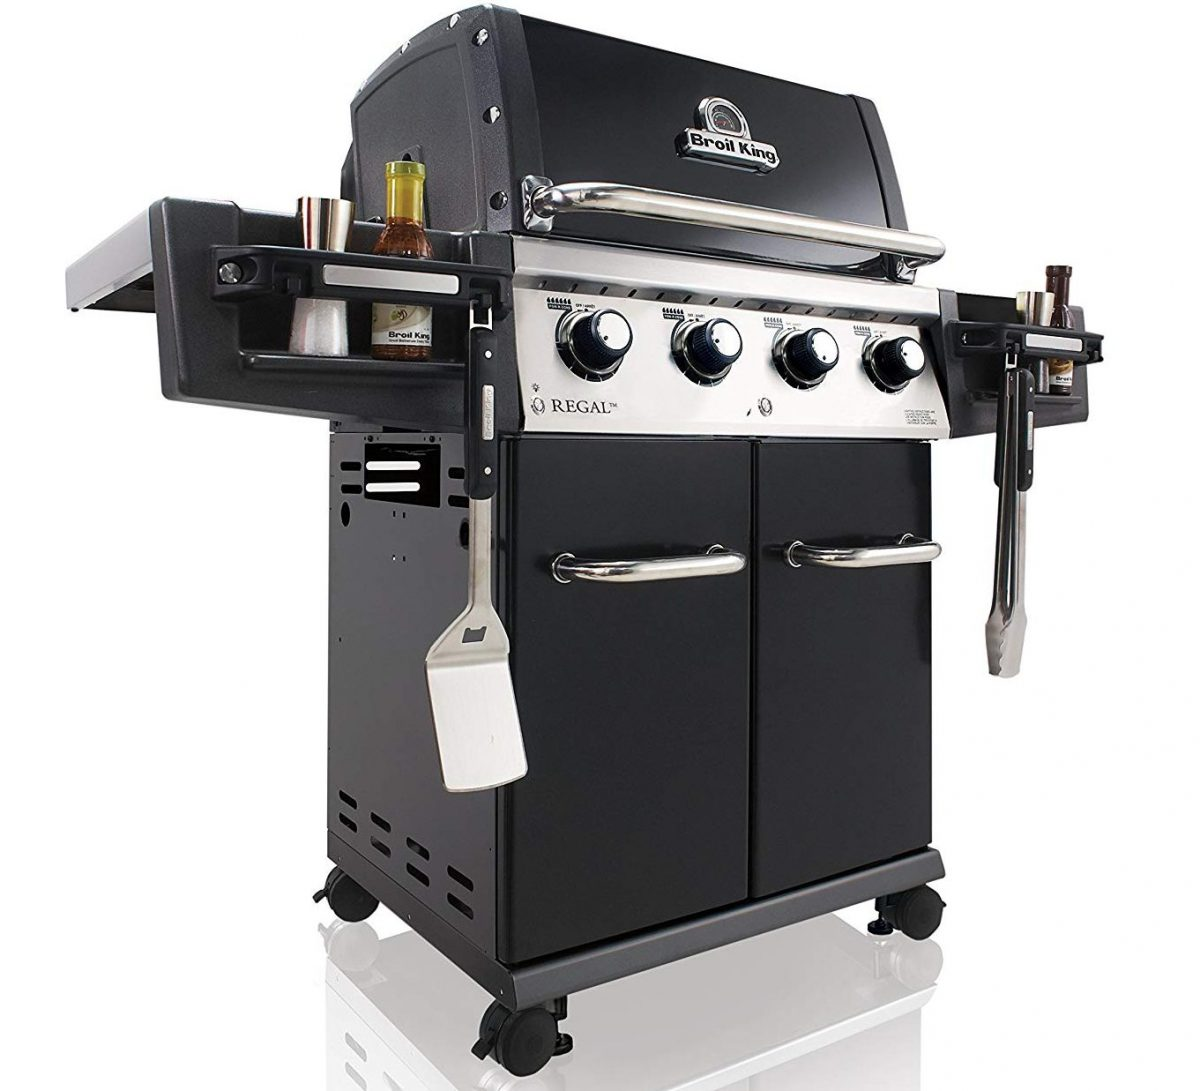 Broil King REGAL 420